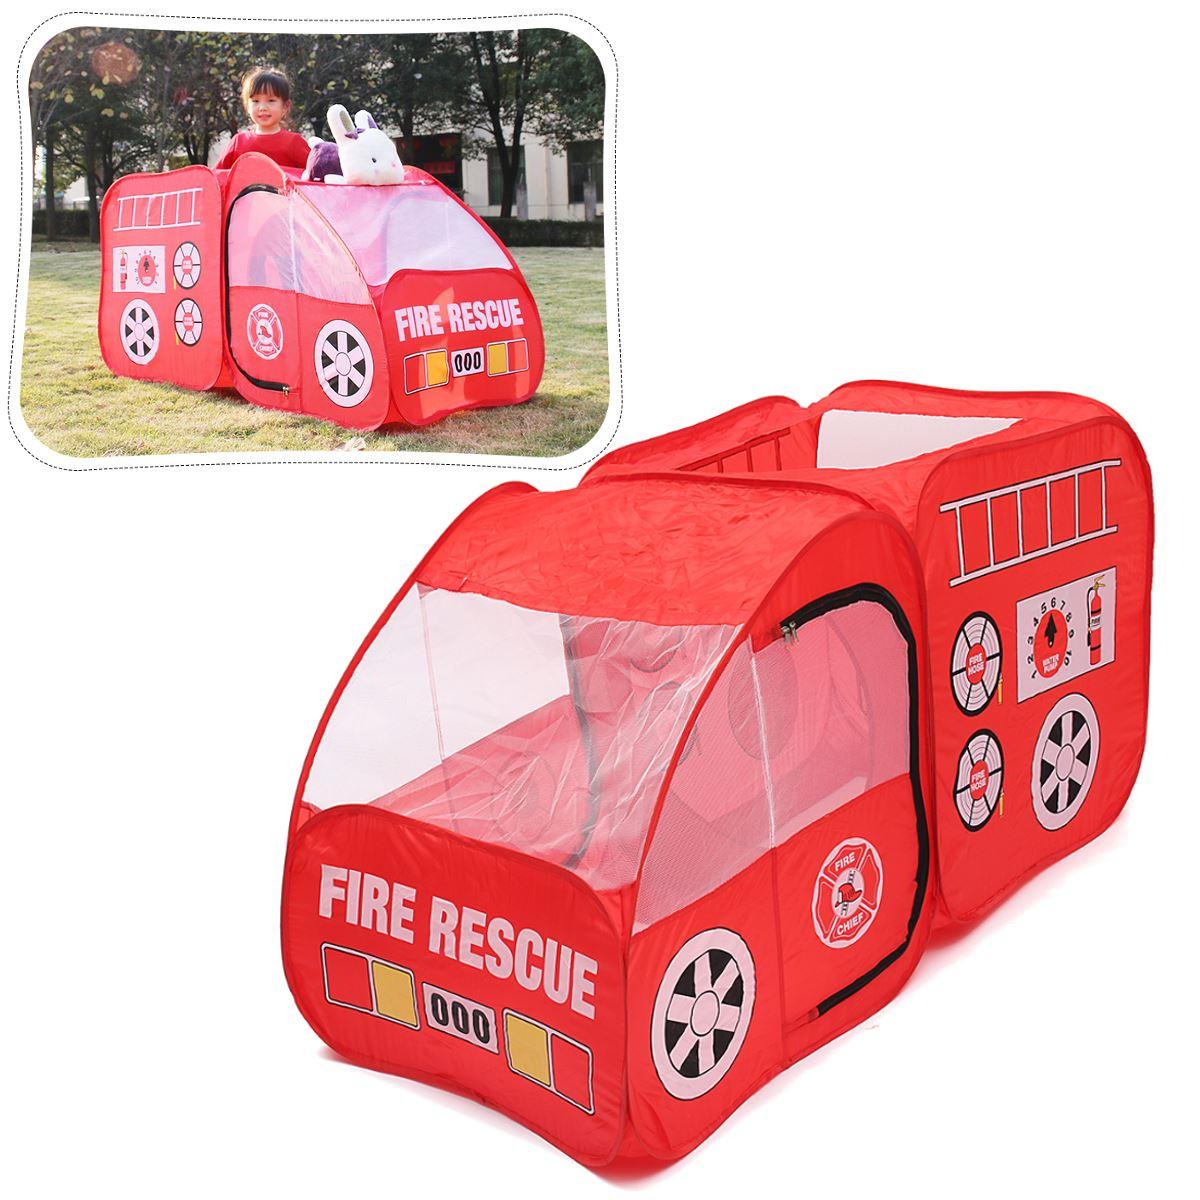 Portable Fire Truck Play Tent Kids Pop Up Indoor Outdoor Playhouse Toy Gift B Toys Tent Little Kid Tents From Dynan $34.92| Dhgate.Com  sc 1 st  DHgate.com & Portable Fire Truck Play Tent Kids Pop Up Indoor Outdoor Playhouse ...